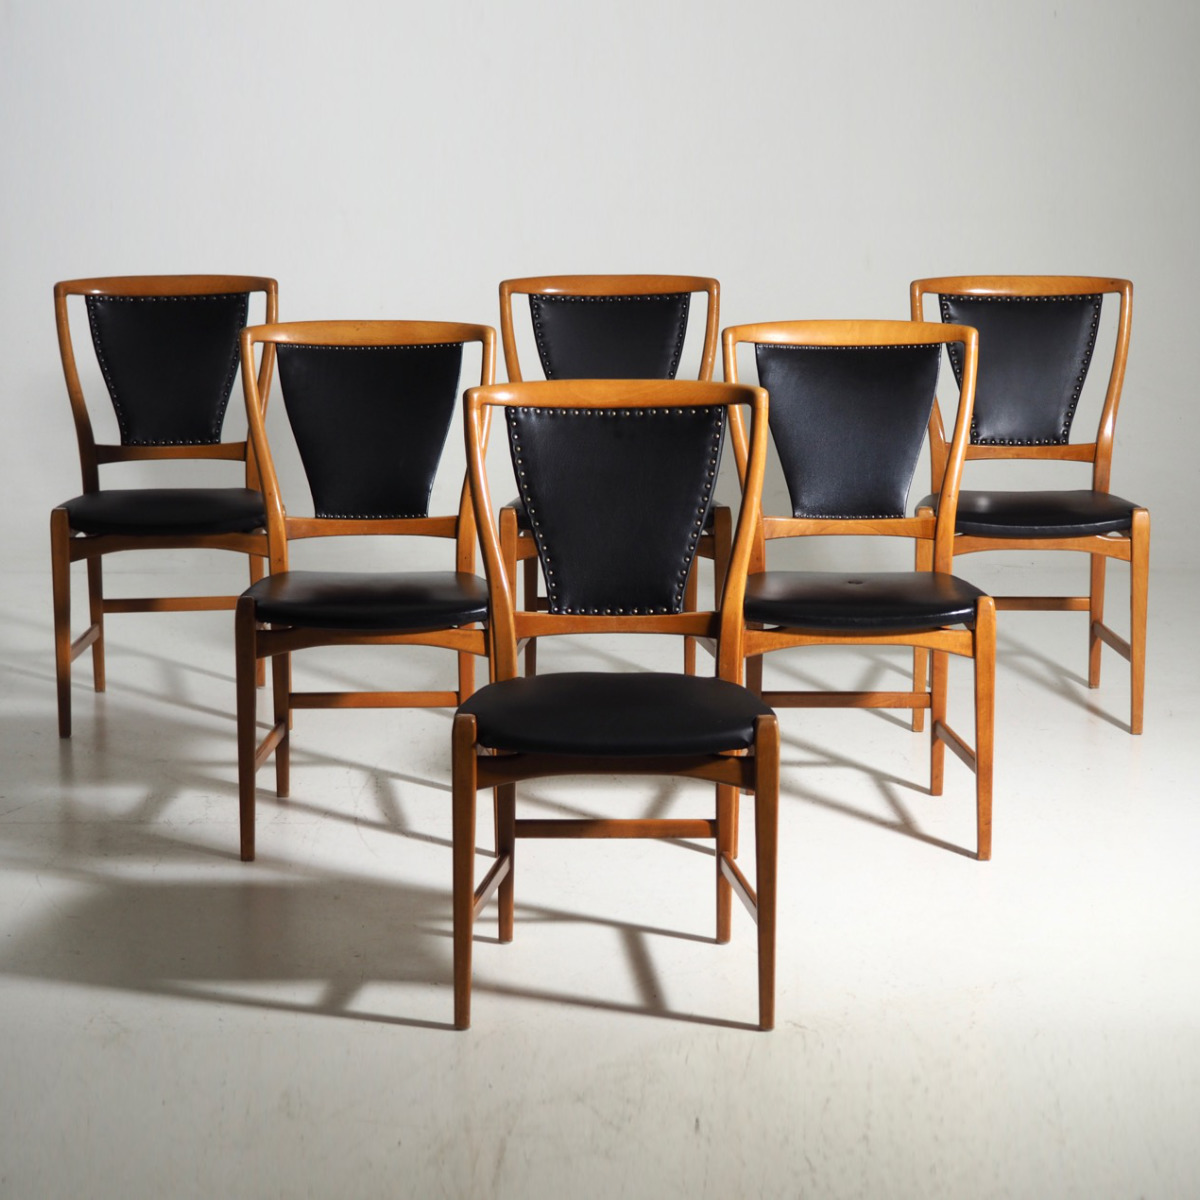 Six chairs in fruitwood, 1960 - 70 - € 1.000